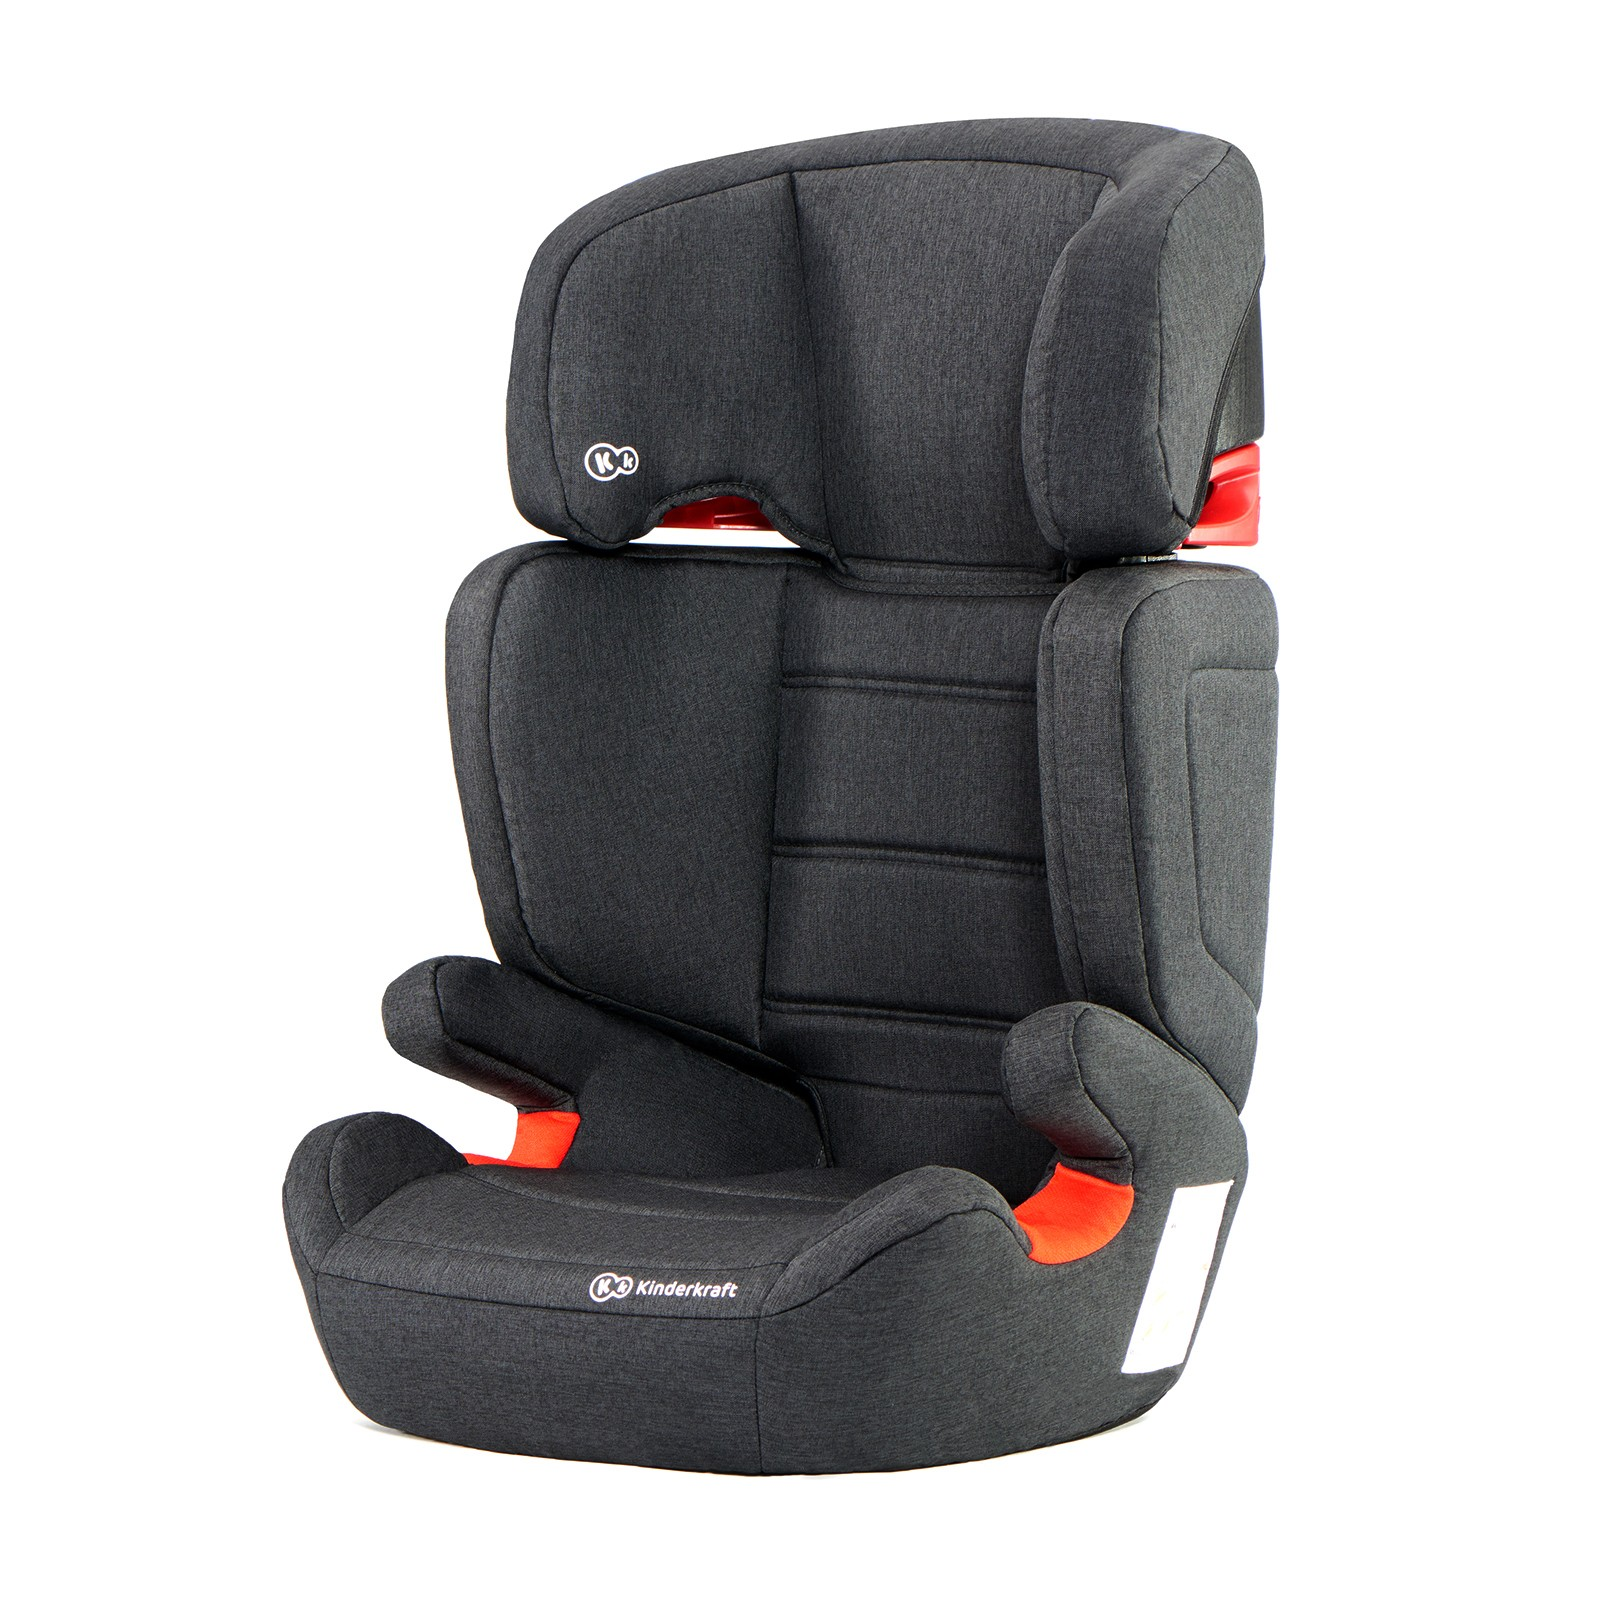 Autosedačka Junior Fix Isofix Black 15-36kg Kinderkraft 2019